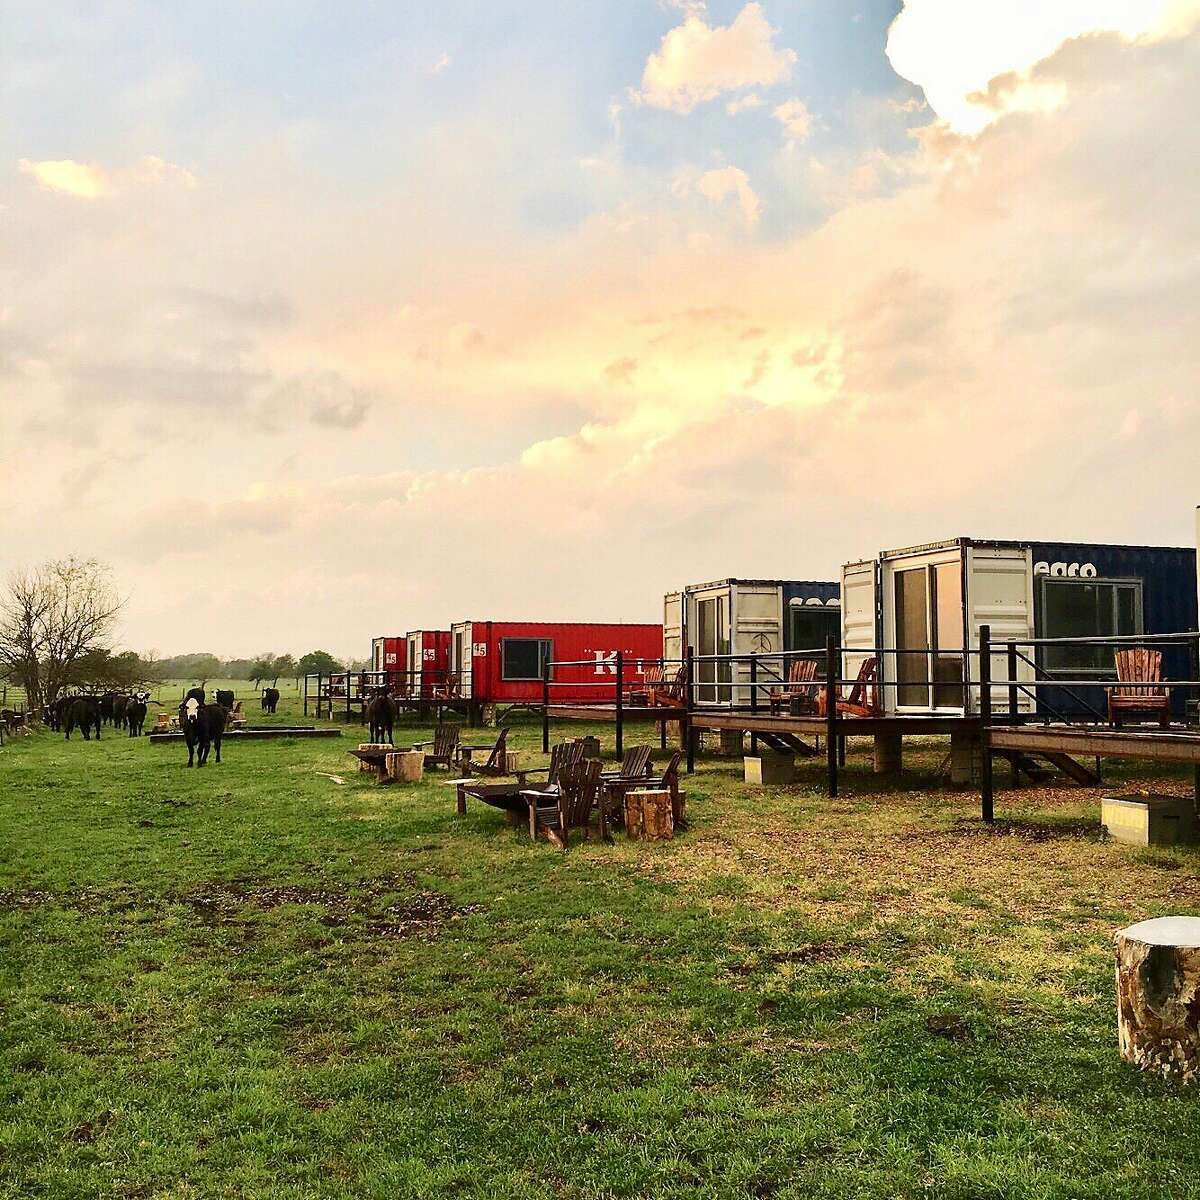 The Flophouze Hotel in Round Top has six suites, each an individual shipping container.